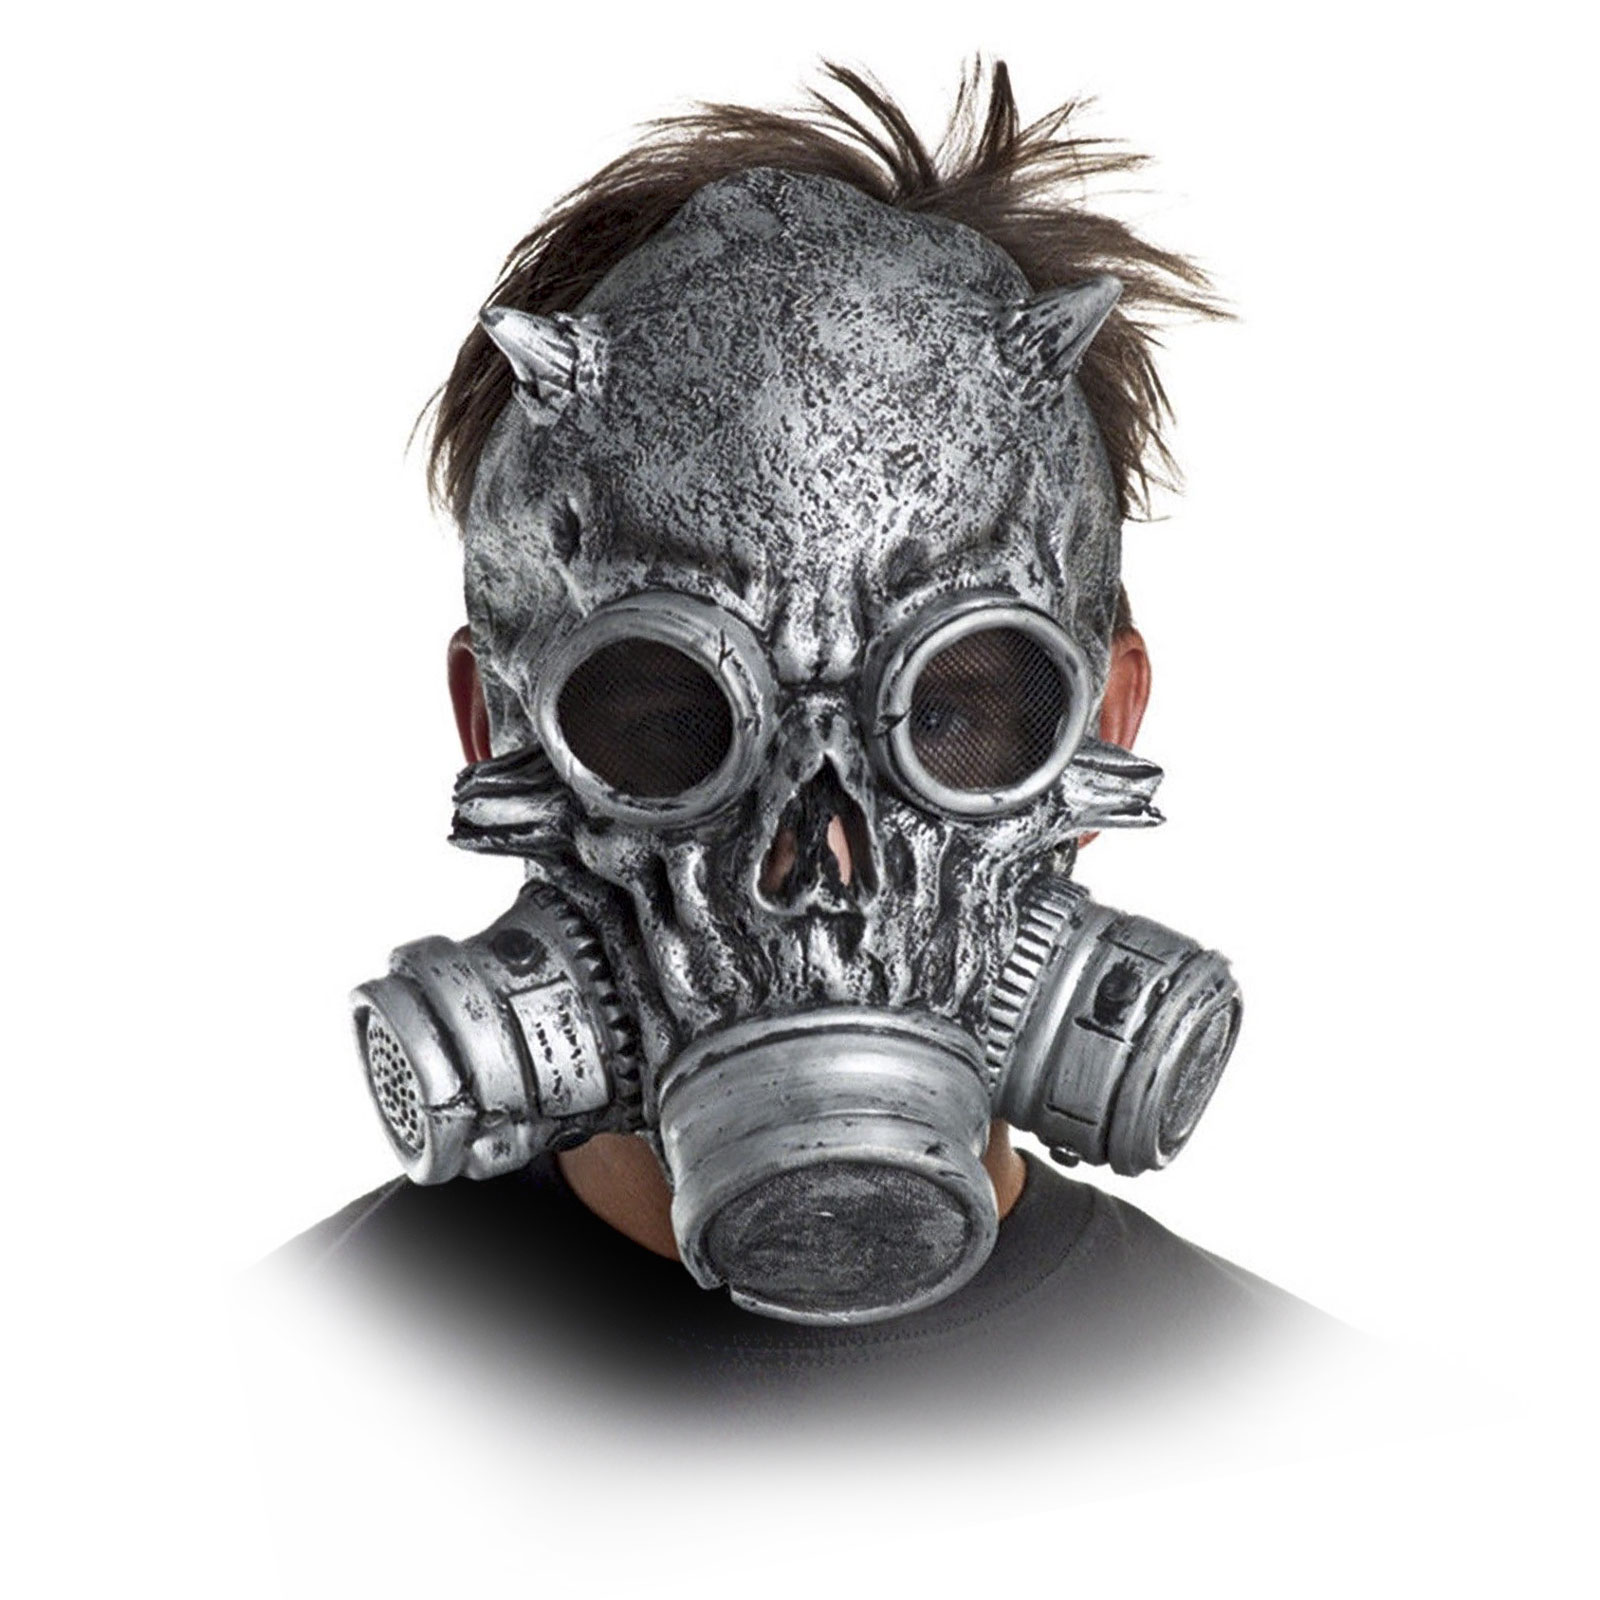 Store Categories  sc 1 st  eBay & SKULL Chemical Biological Warfare Biohazard Costume Gas Mask | eBay